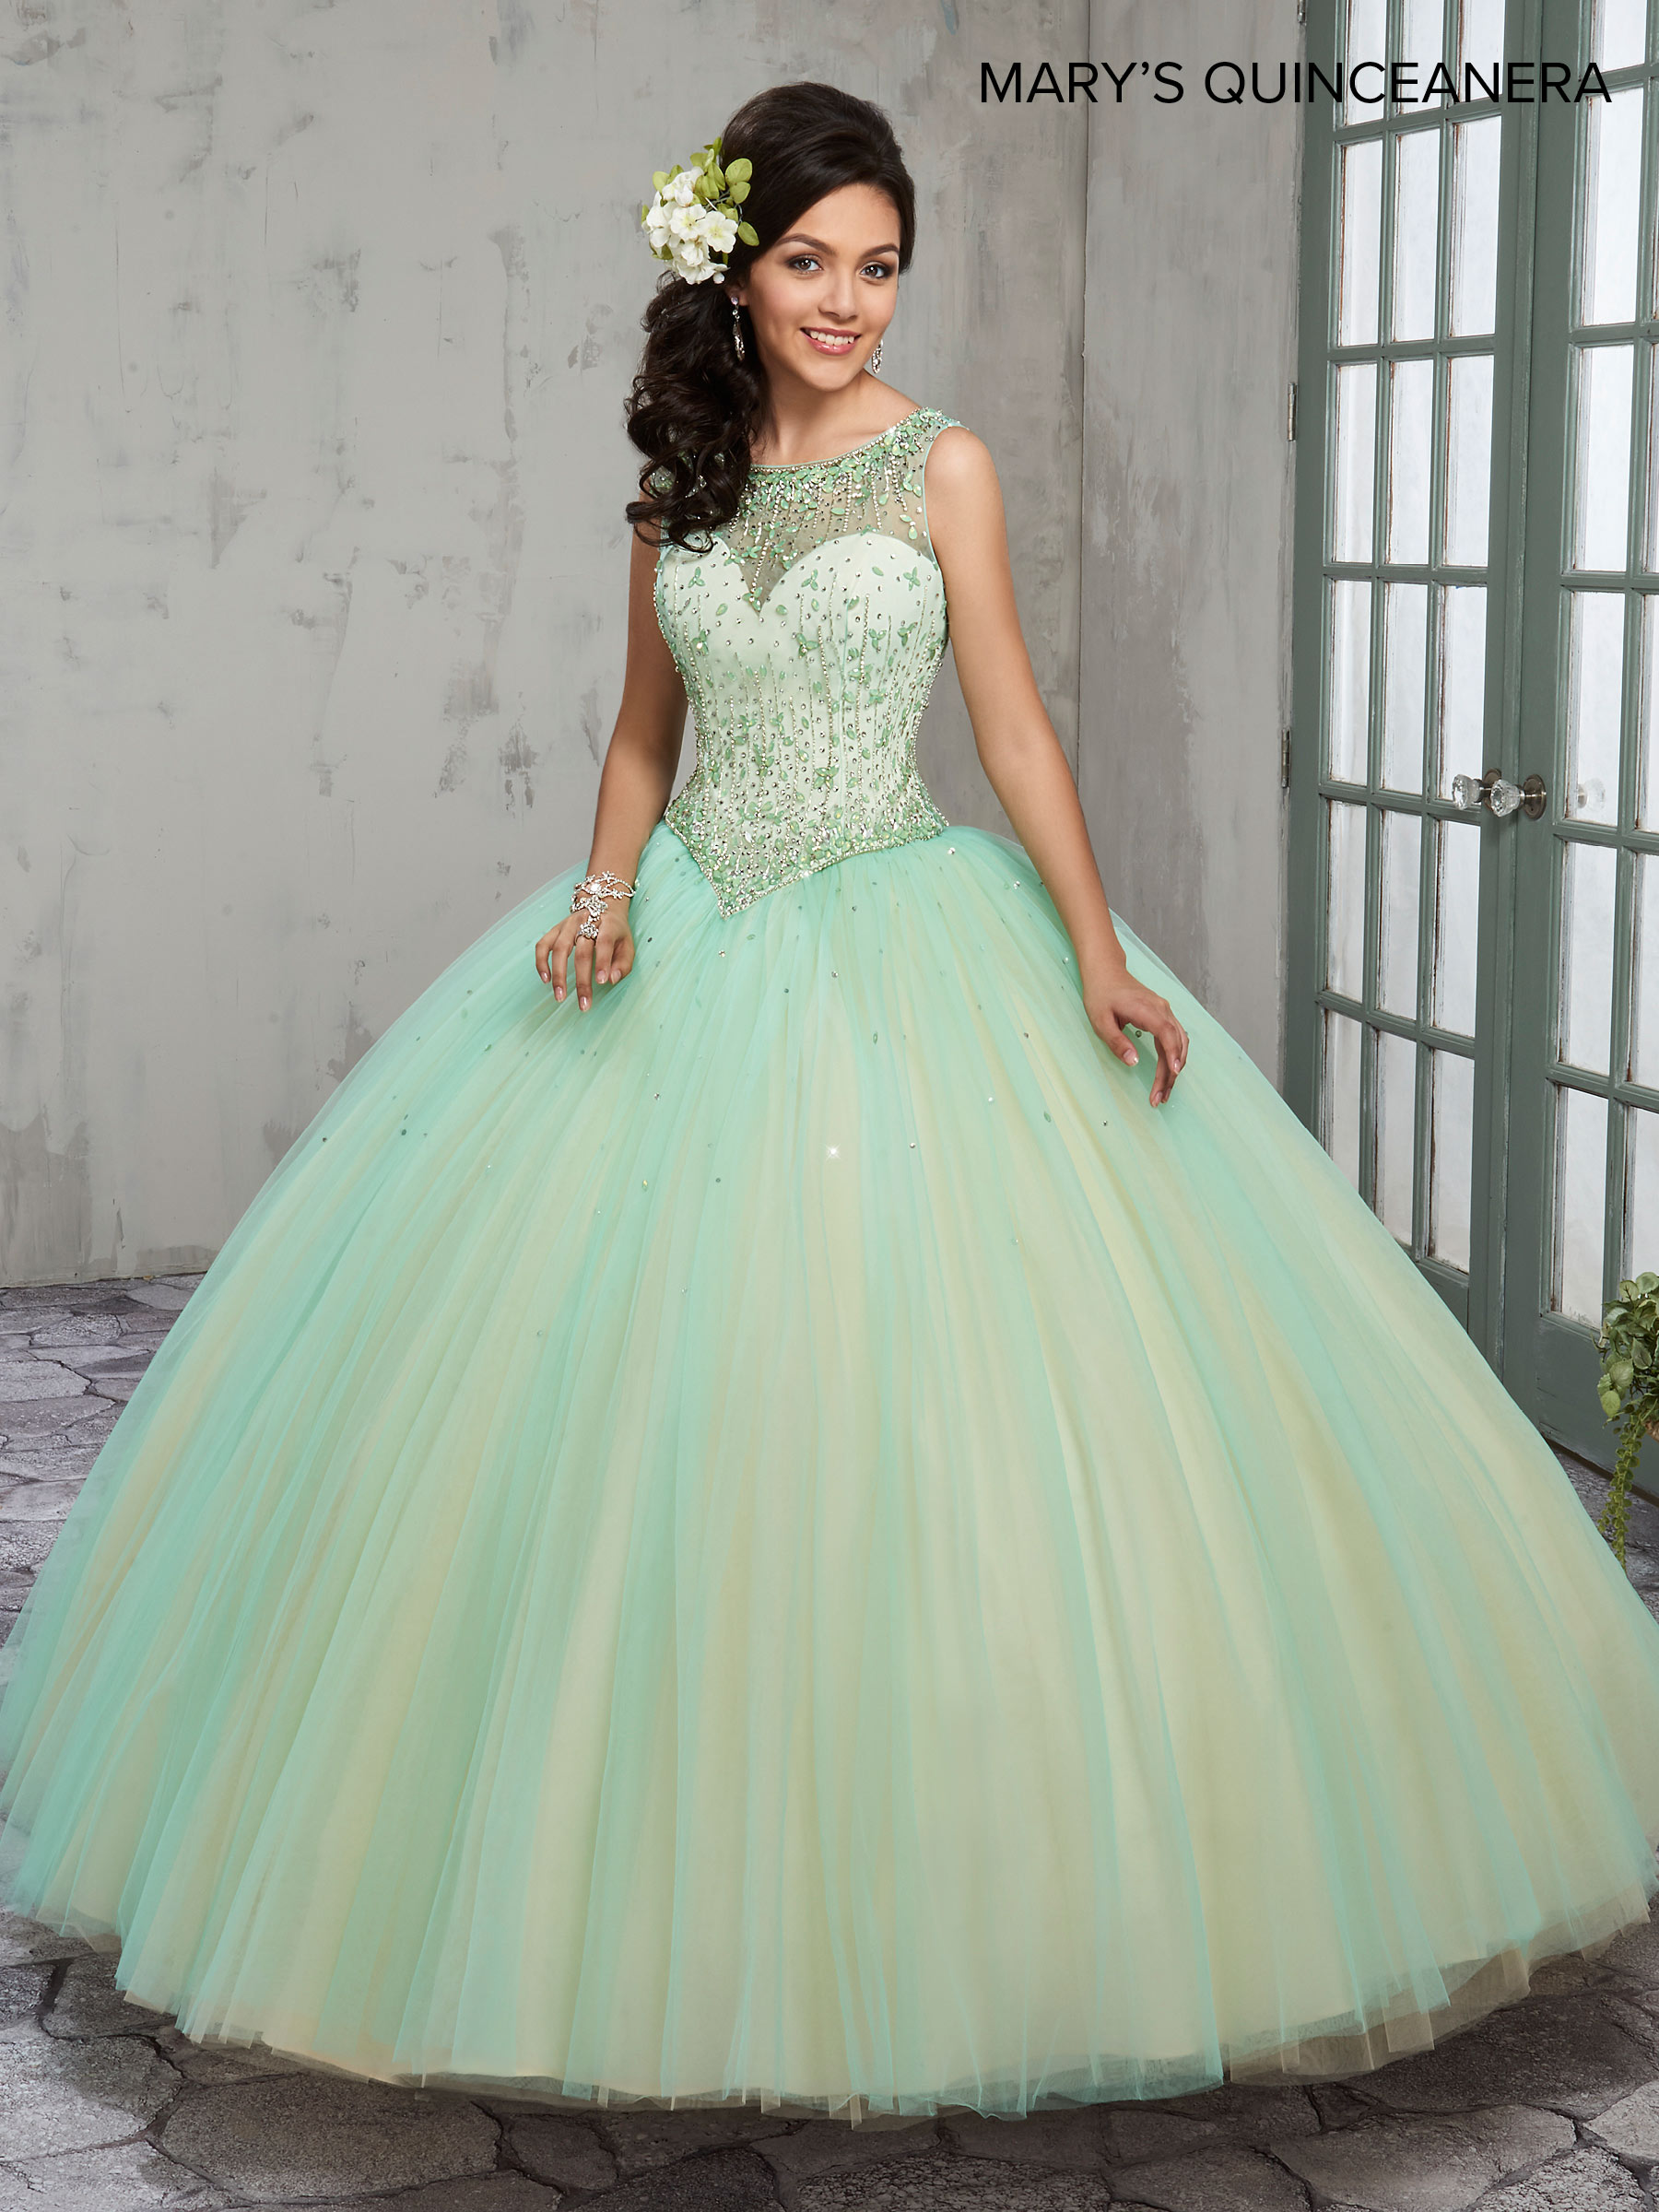 Marys Quinceanera Dresses | Mary's Quinceanera | Style - MQ2014